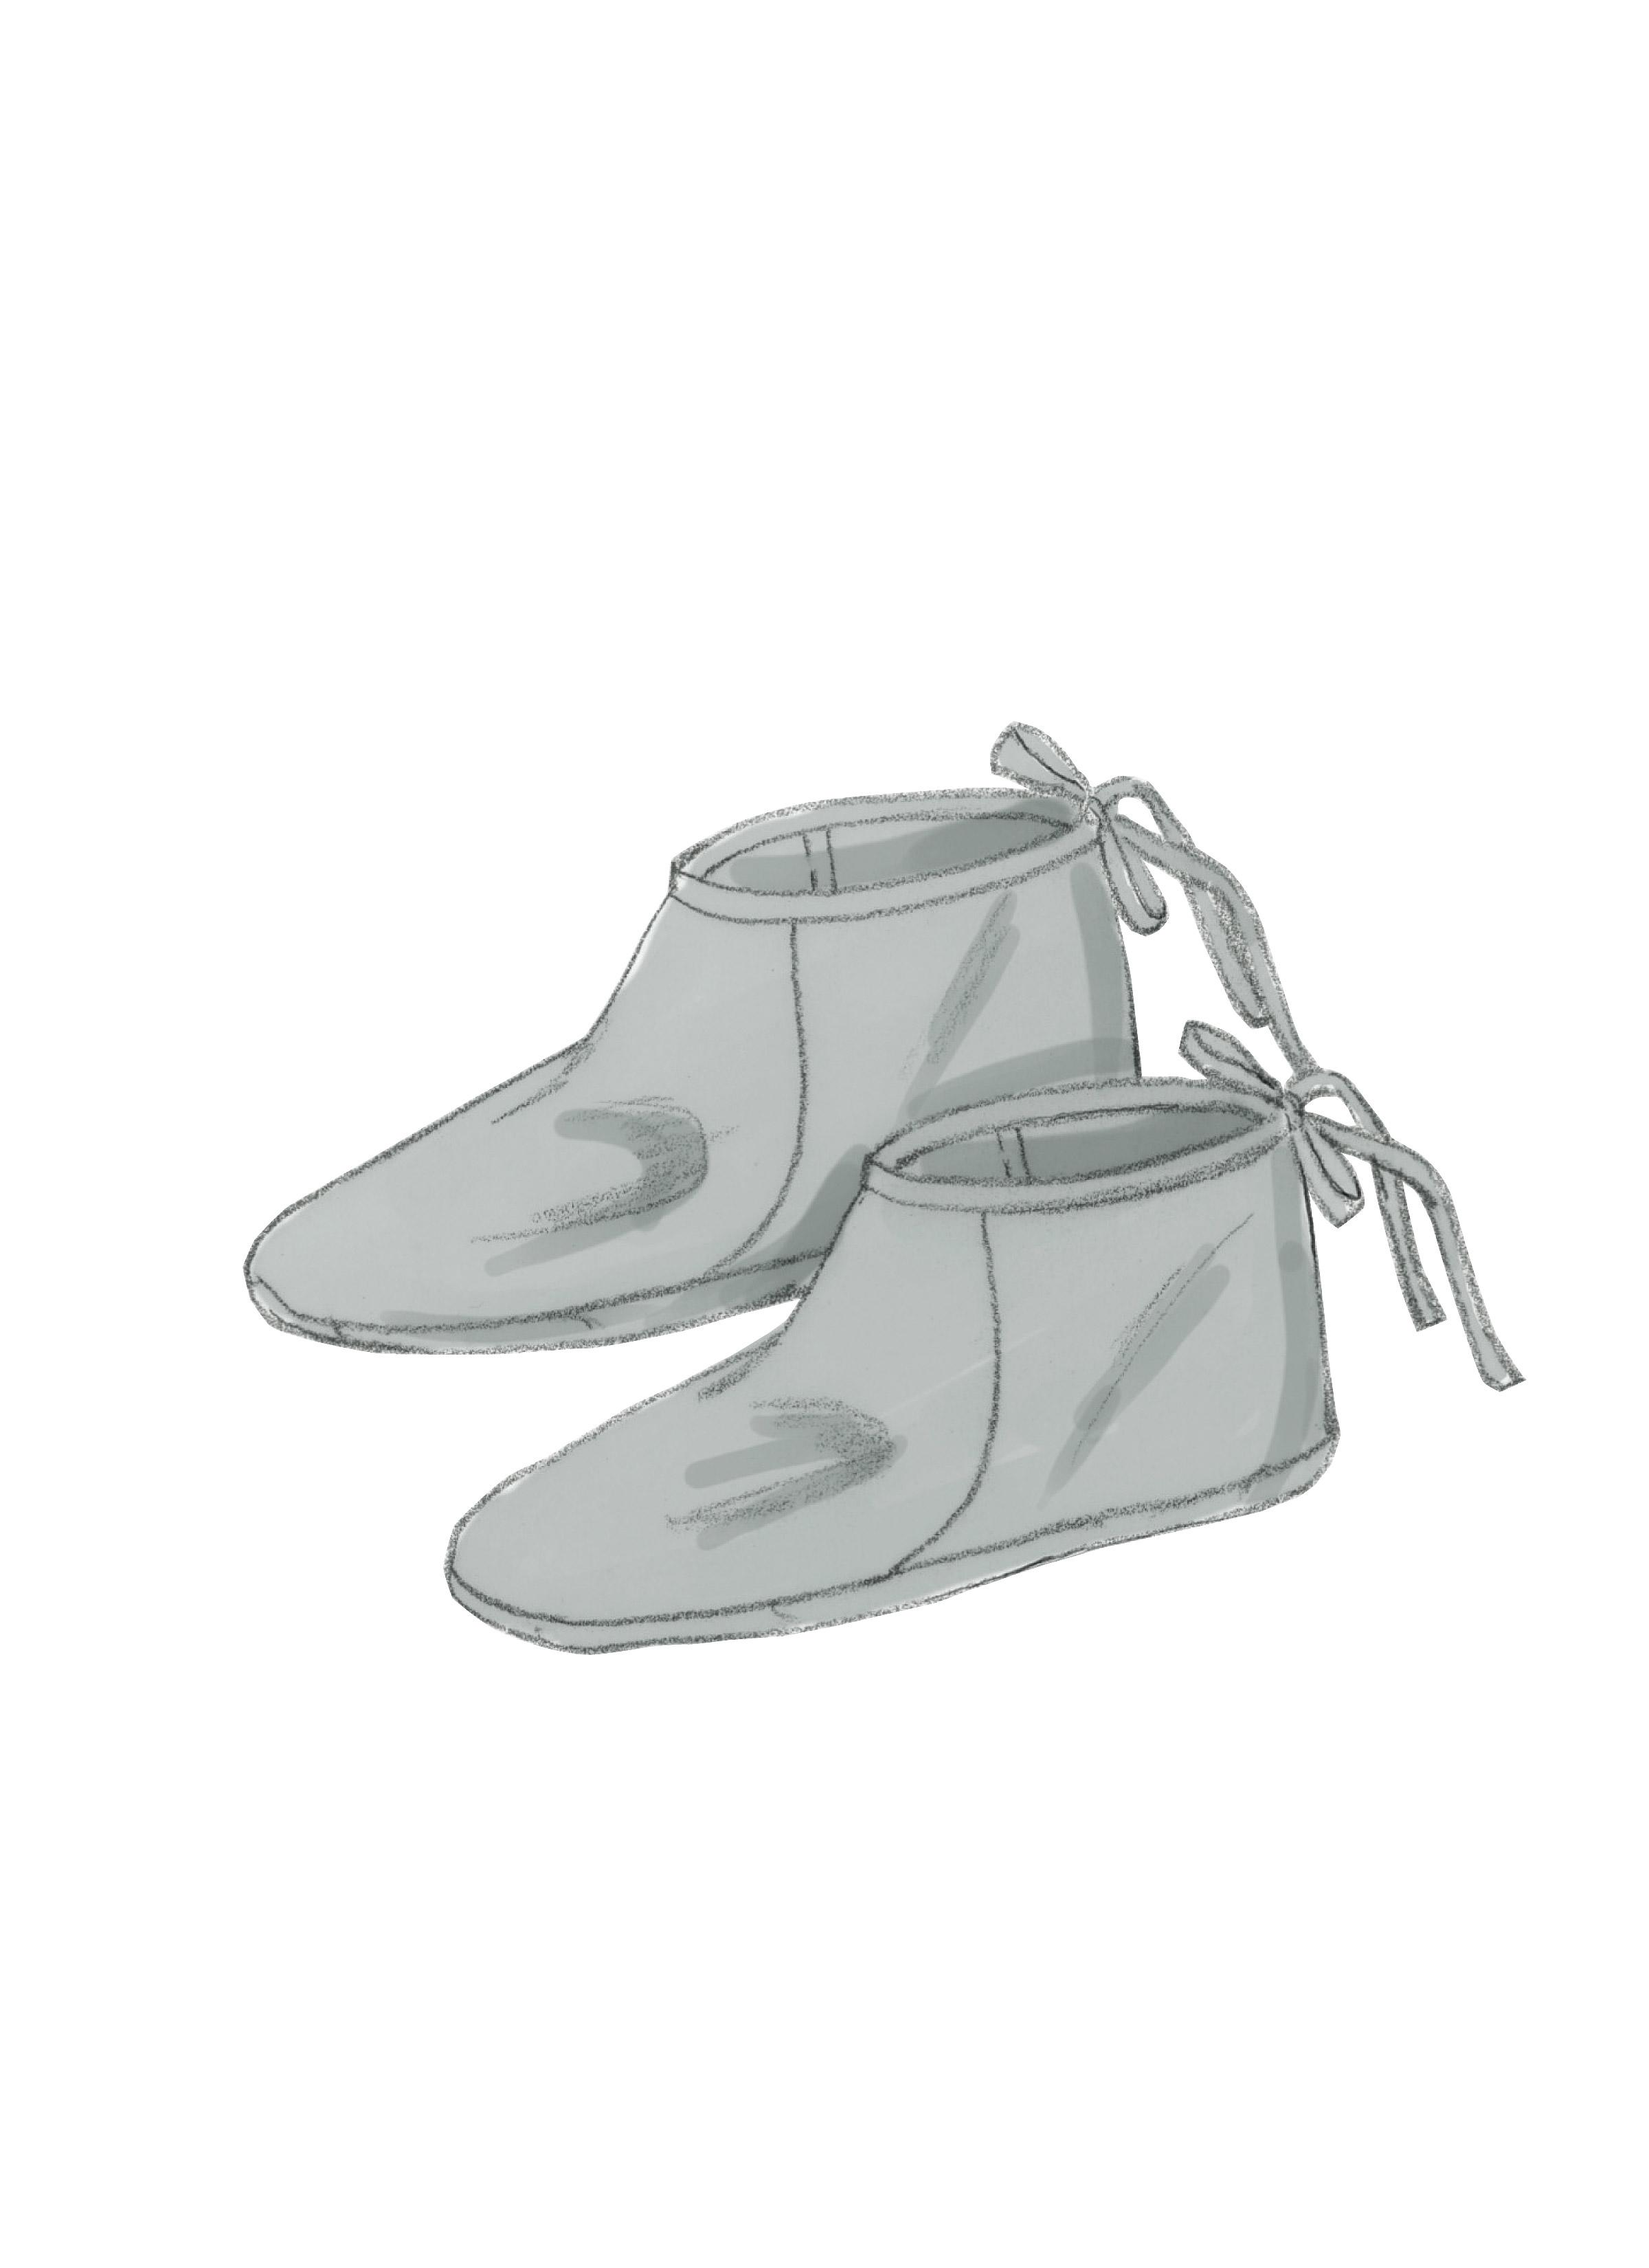 Butterick B5233 Historical Footwear